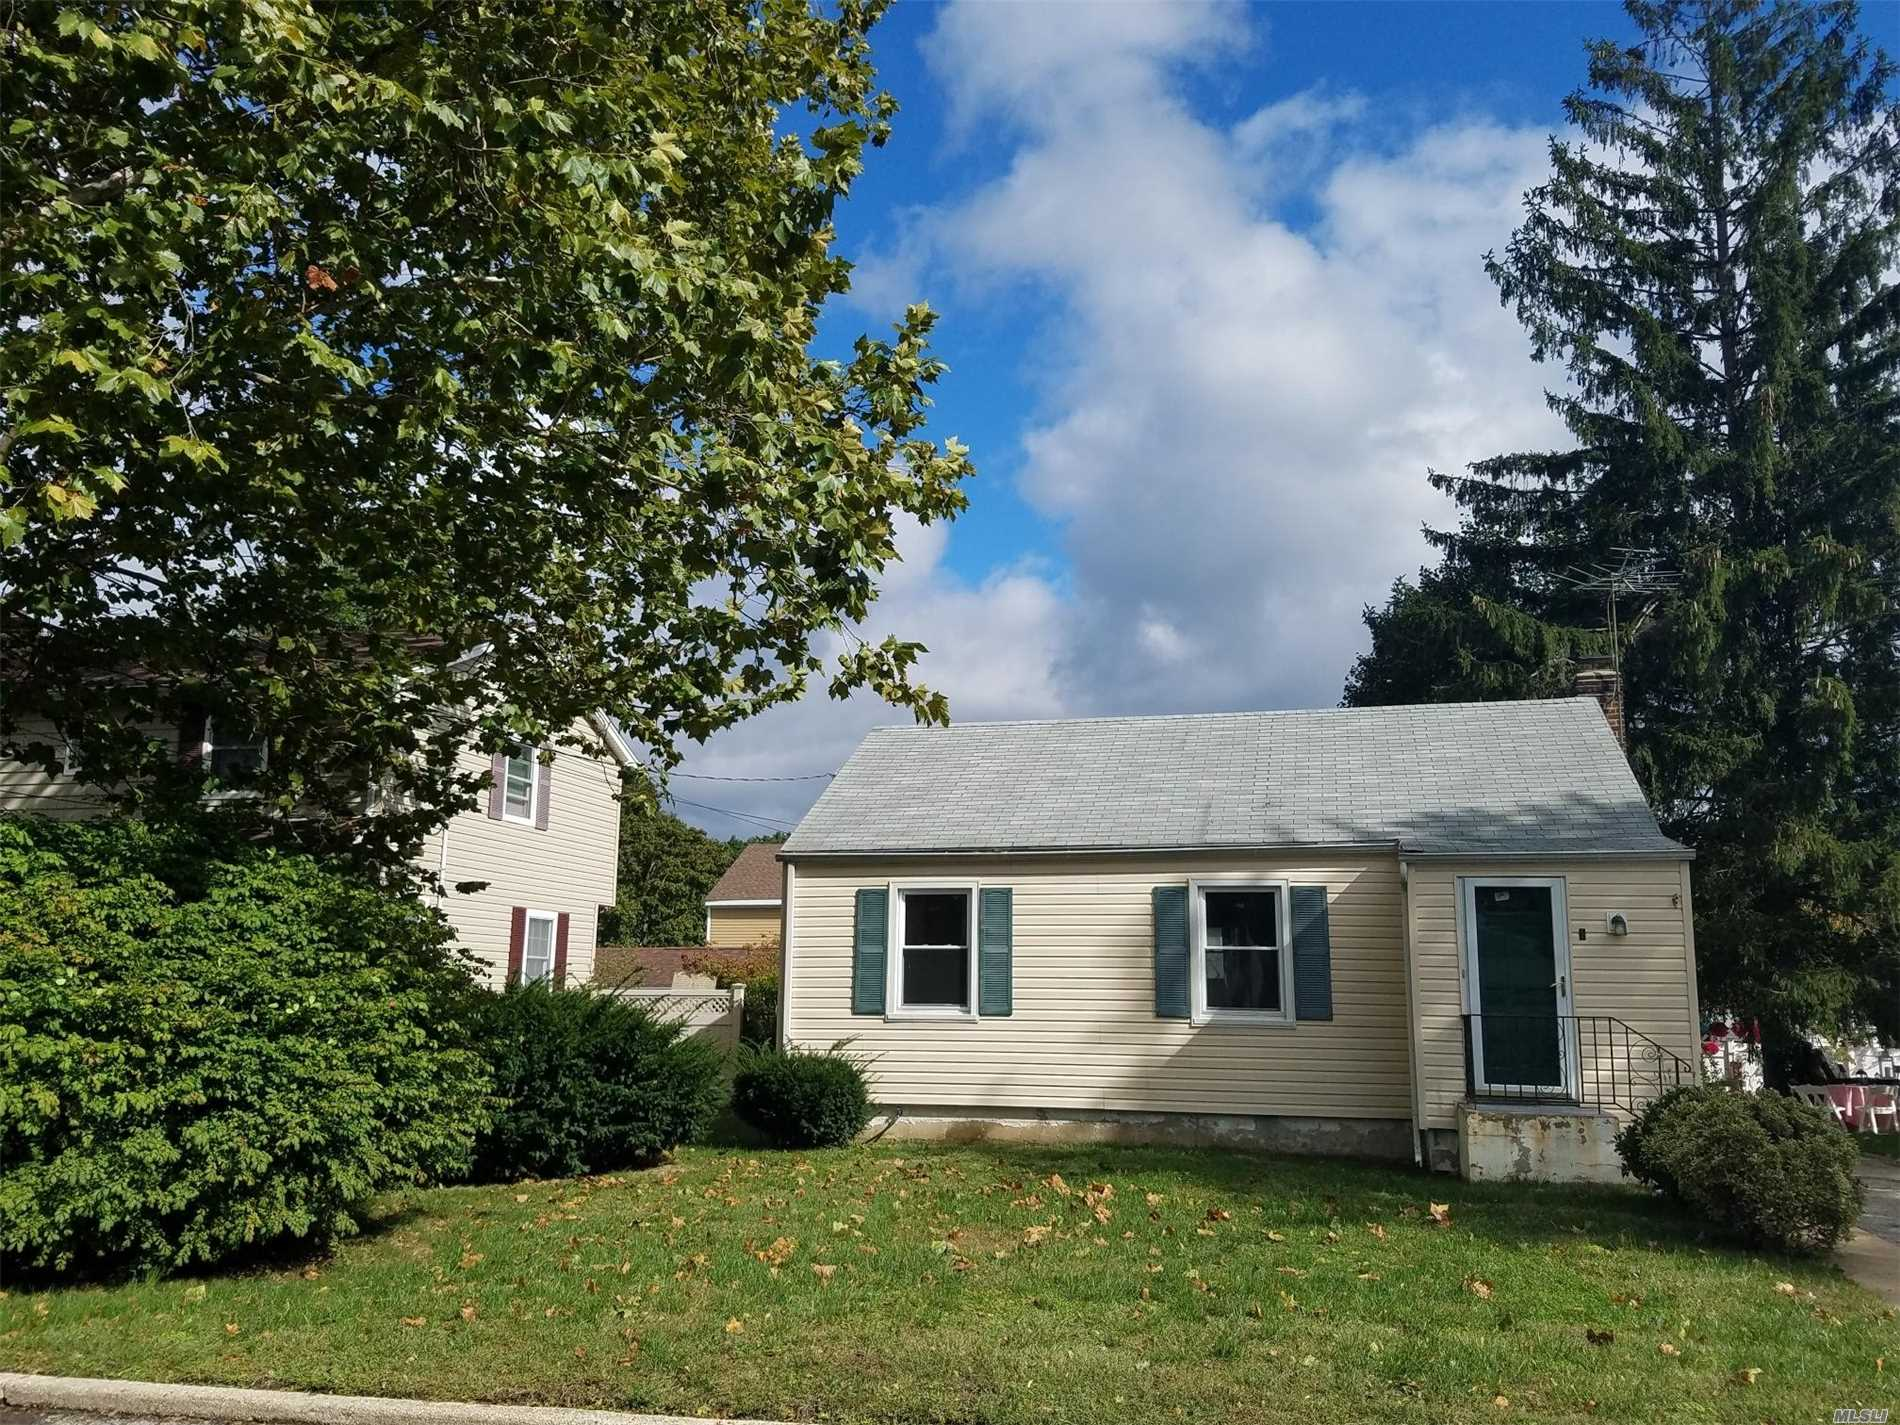 Charm Abounds In This Circa 1938 Warm & Inviting Classic Cottage. Formal Living Room, 2 Bedroom, 1 Bath, Hardwood Floors, Walk-Up Attic, Full Basement W/Utilities And Laundry. New Windows & Siding. 1-Car Detached Garage & Beautiful Rear Yard.